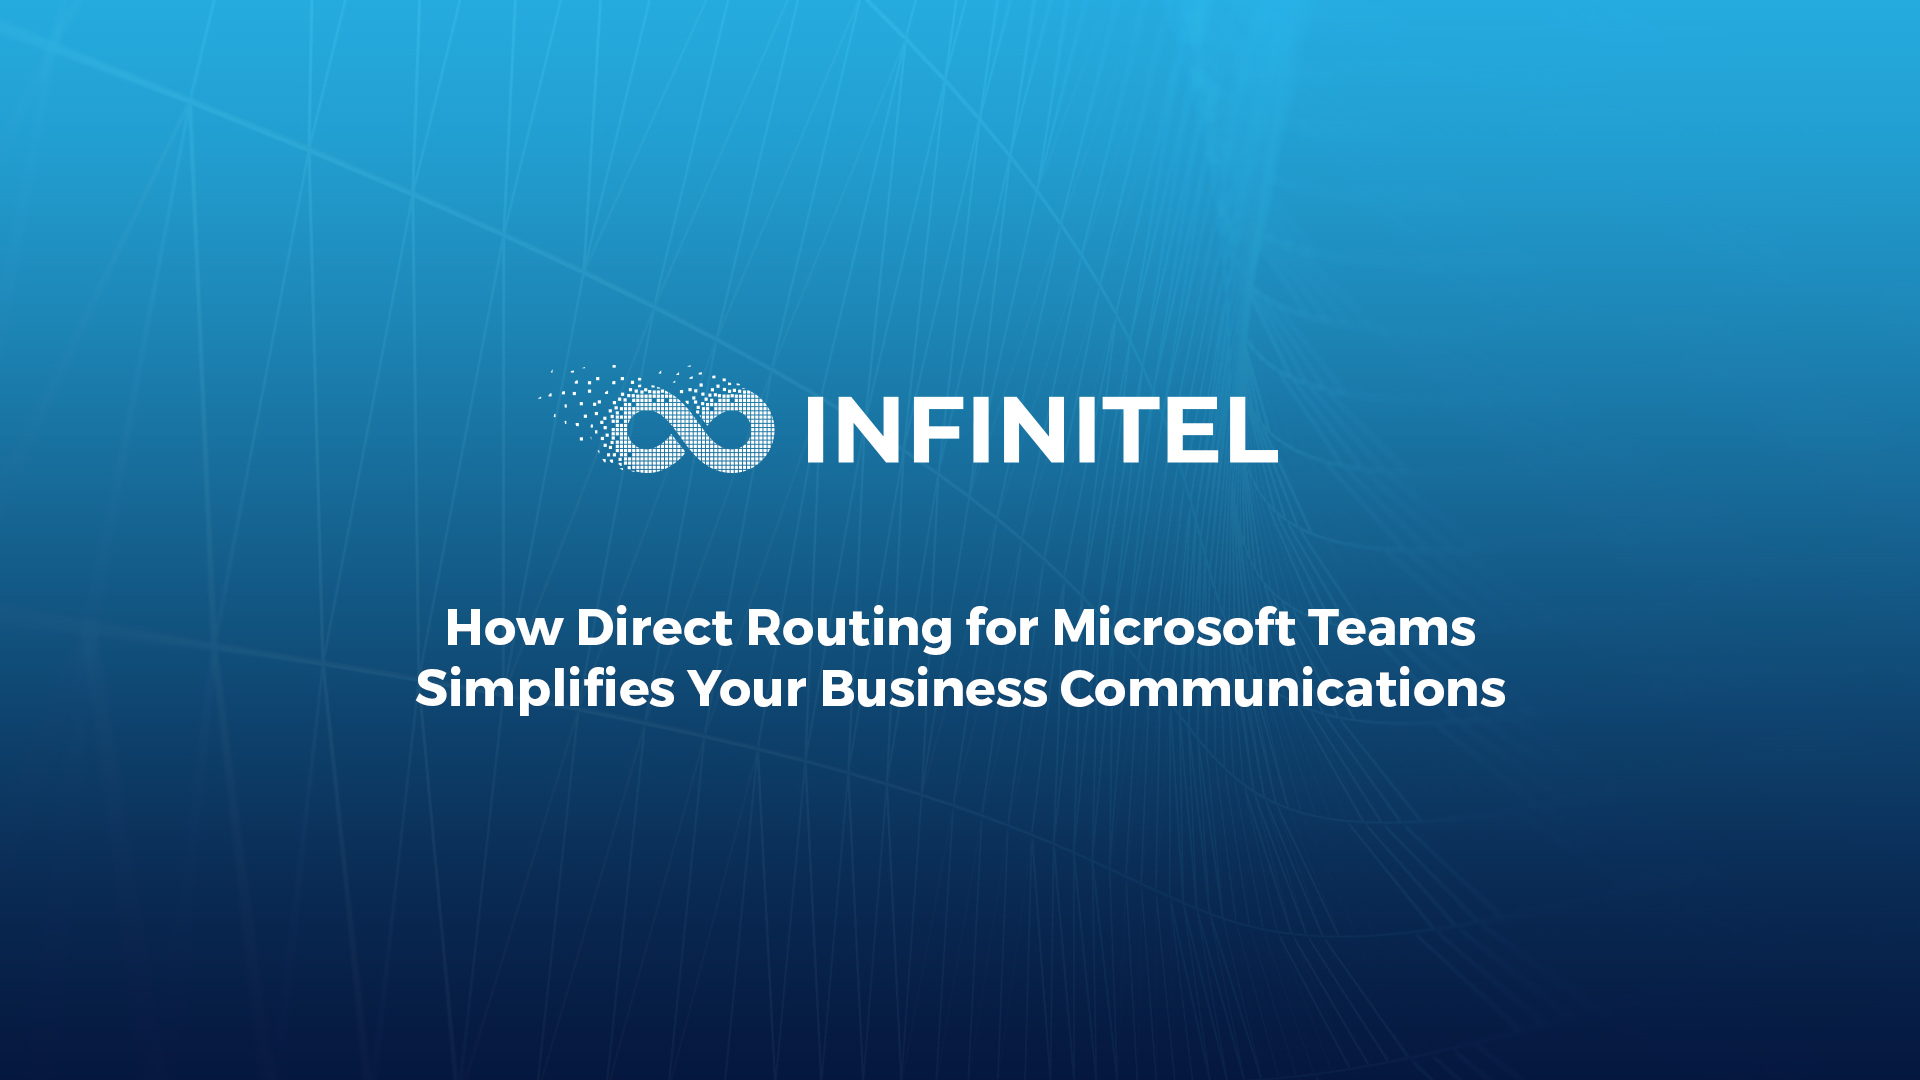 How Direct Routing for Microsoft Teams Simplifies Your Business Communications